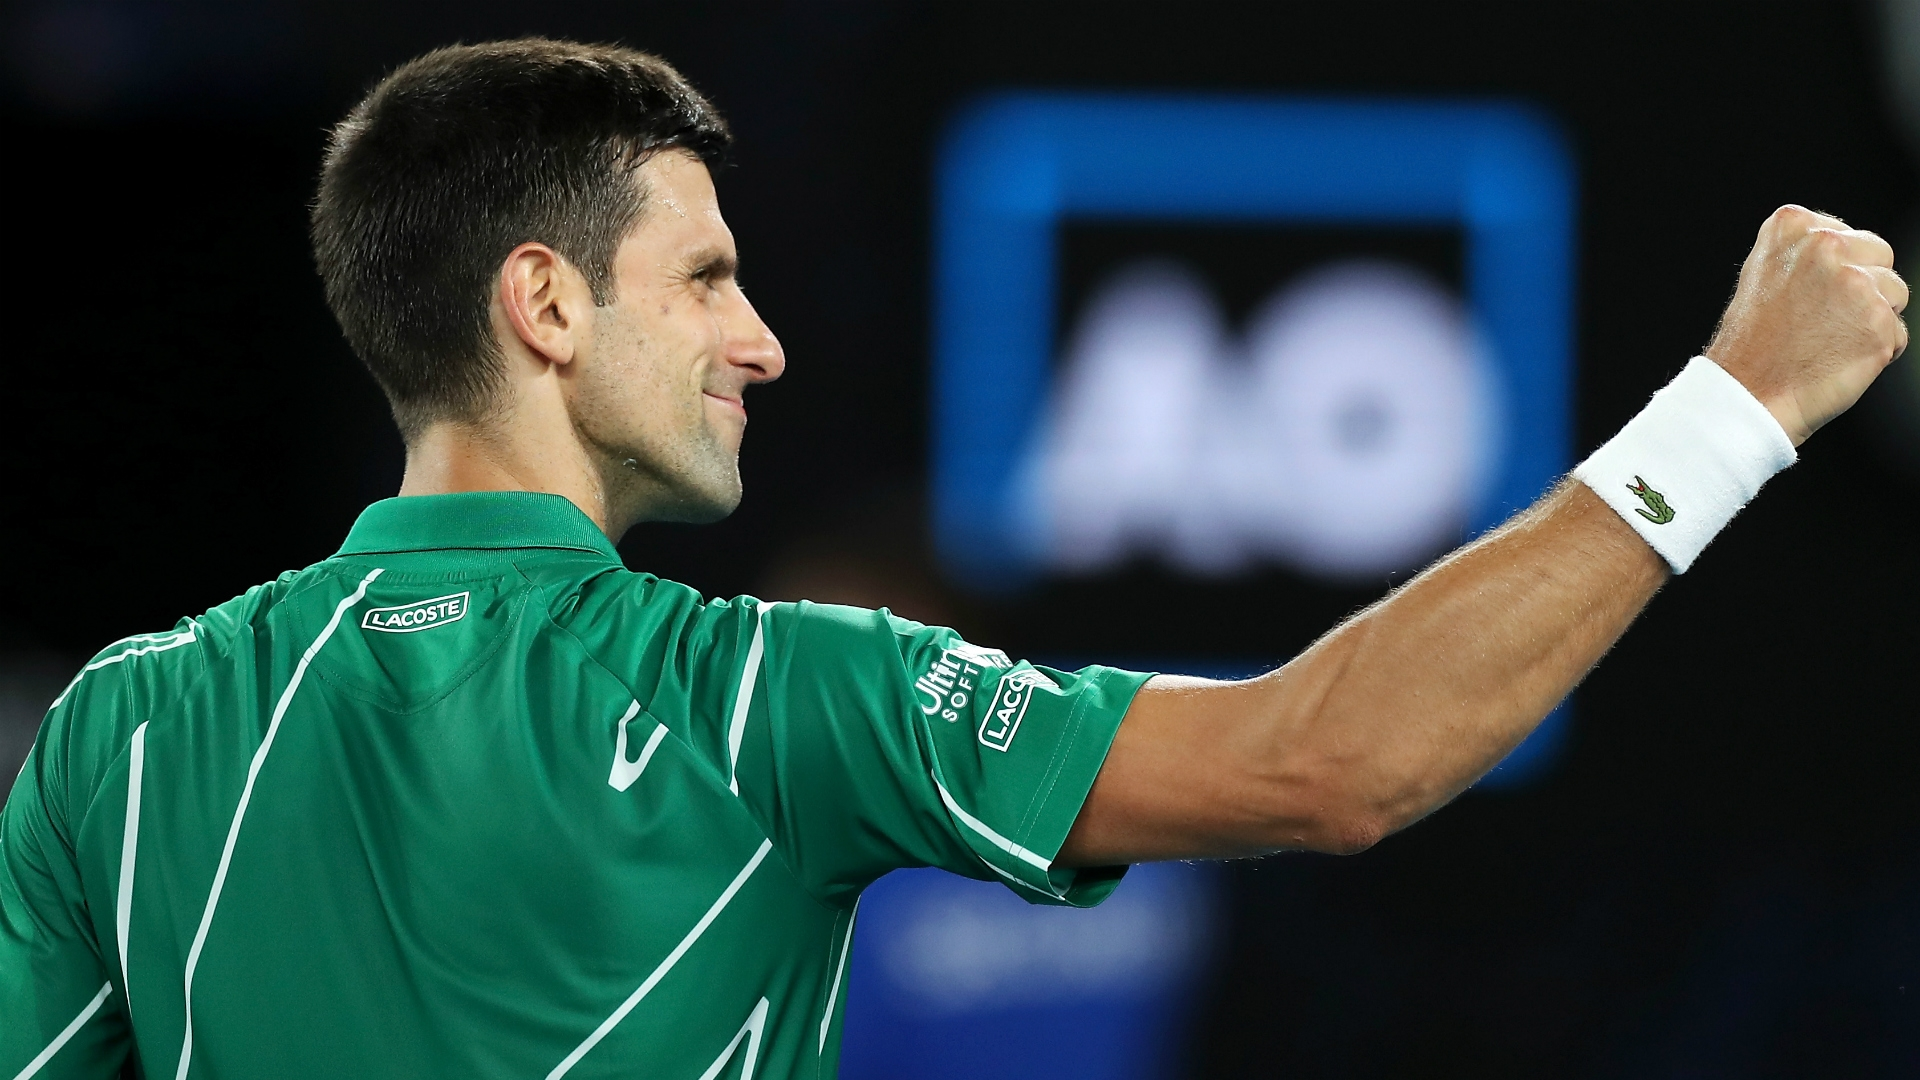 Australian Open 2020 Djokovic to enjoy every moment 1920x1080